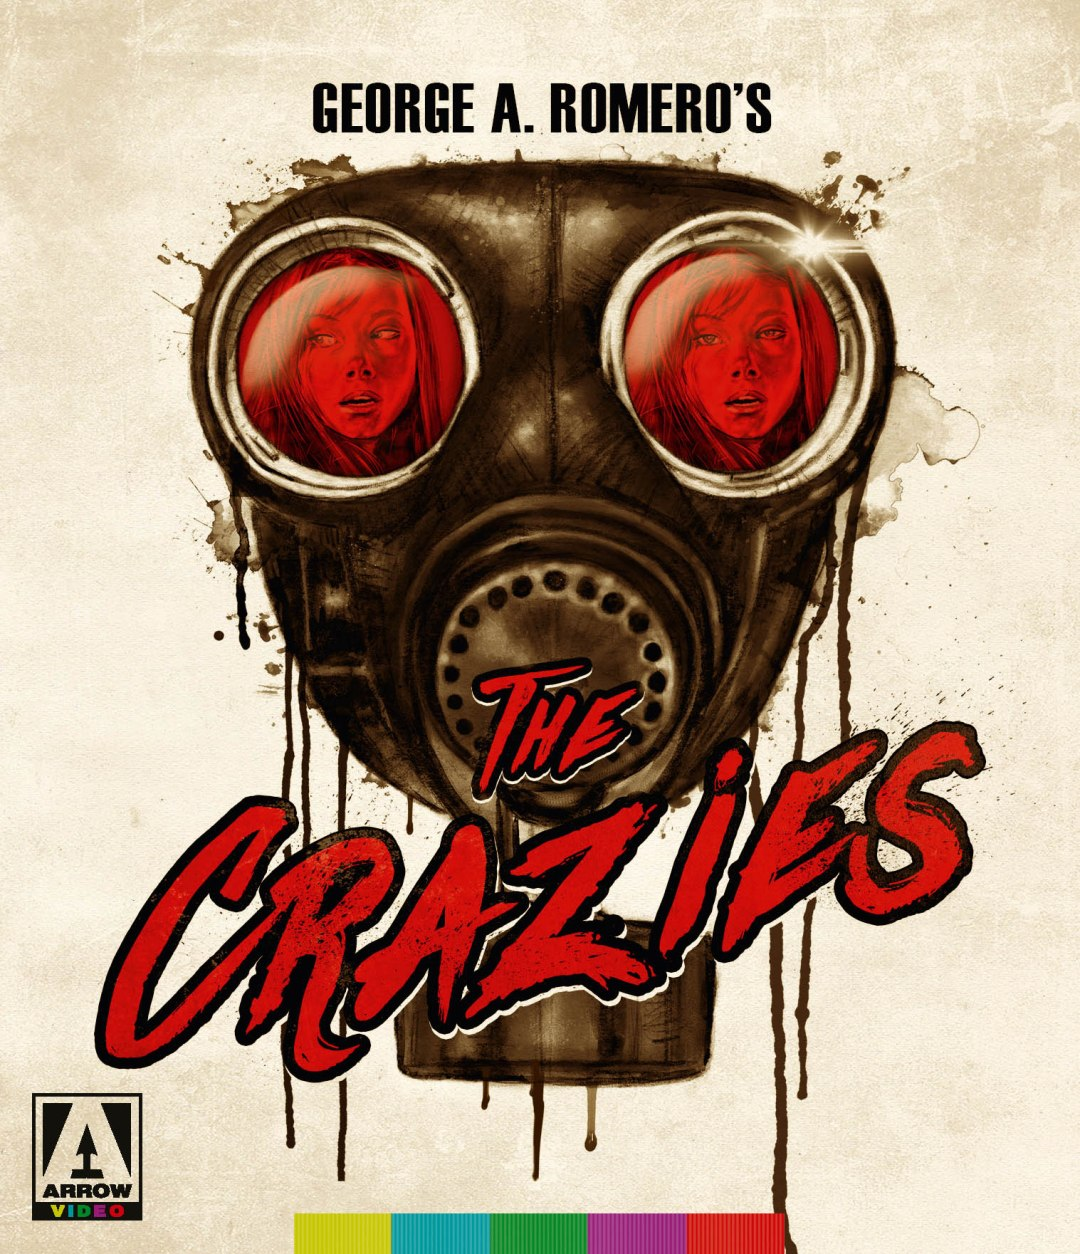 'The Crazies' Blu-ray Available March 13th